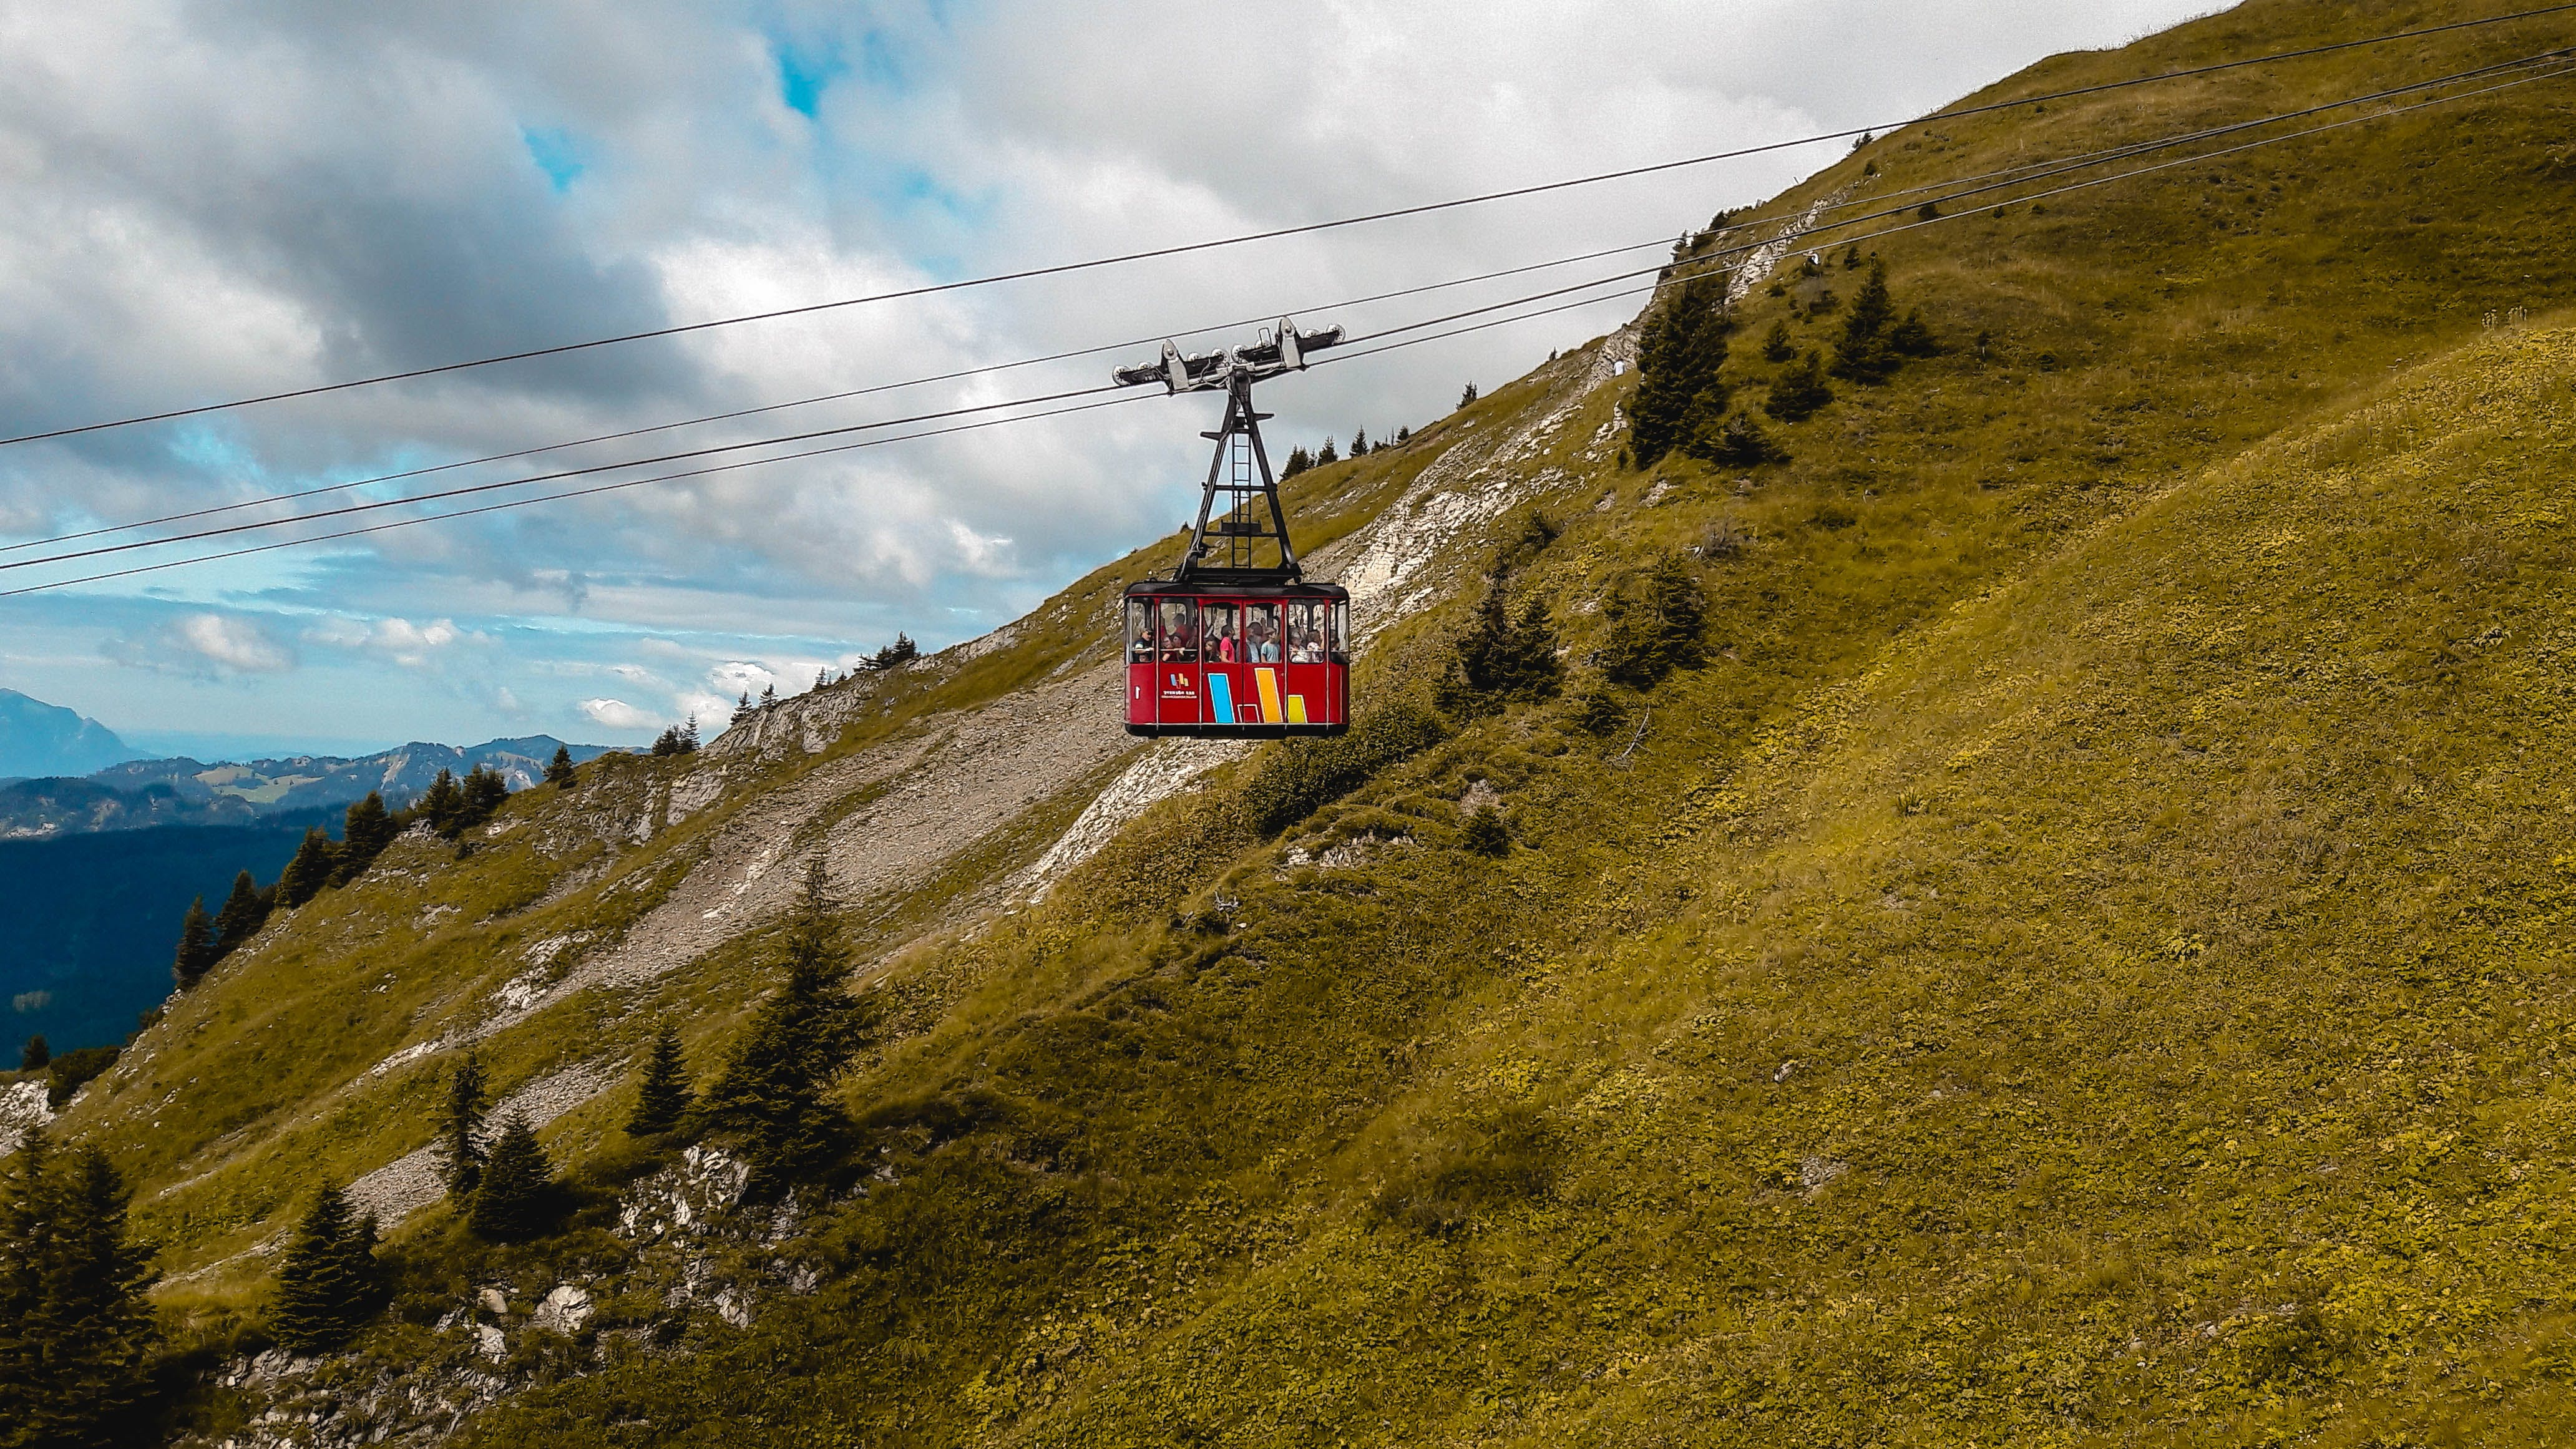 Free stock photo of driving, gondola, landscape, red